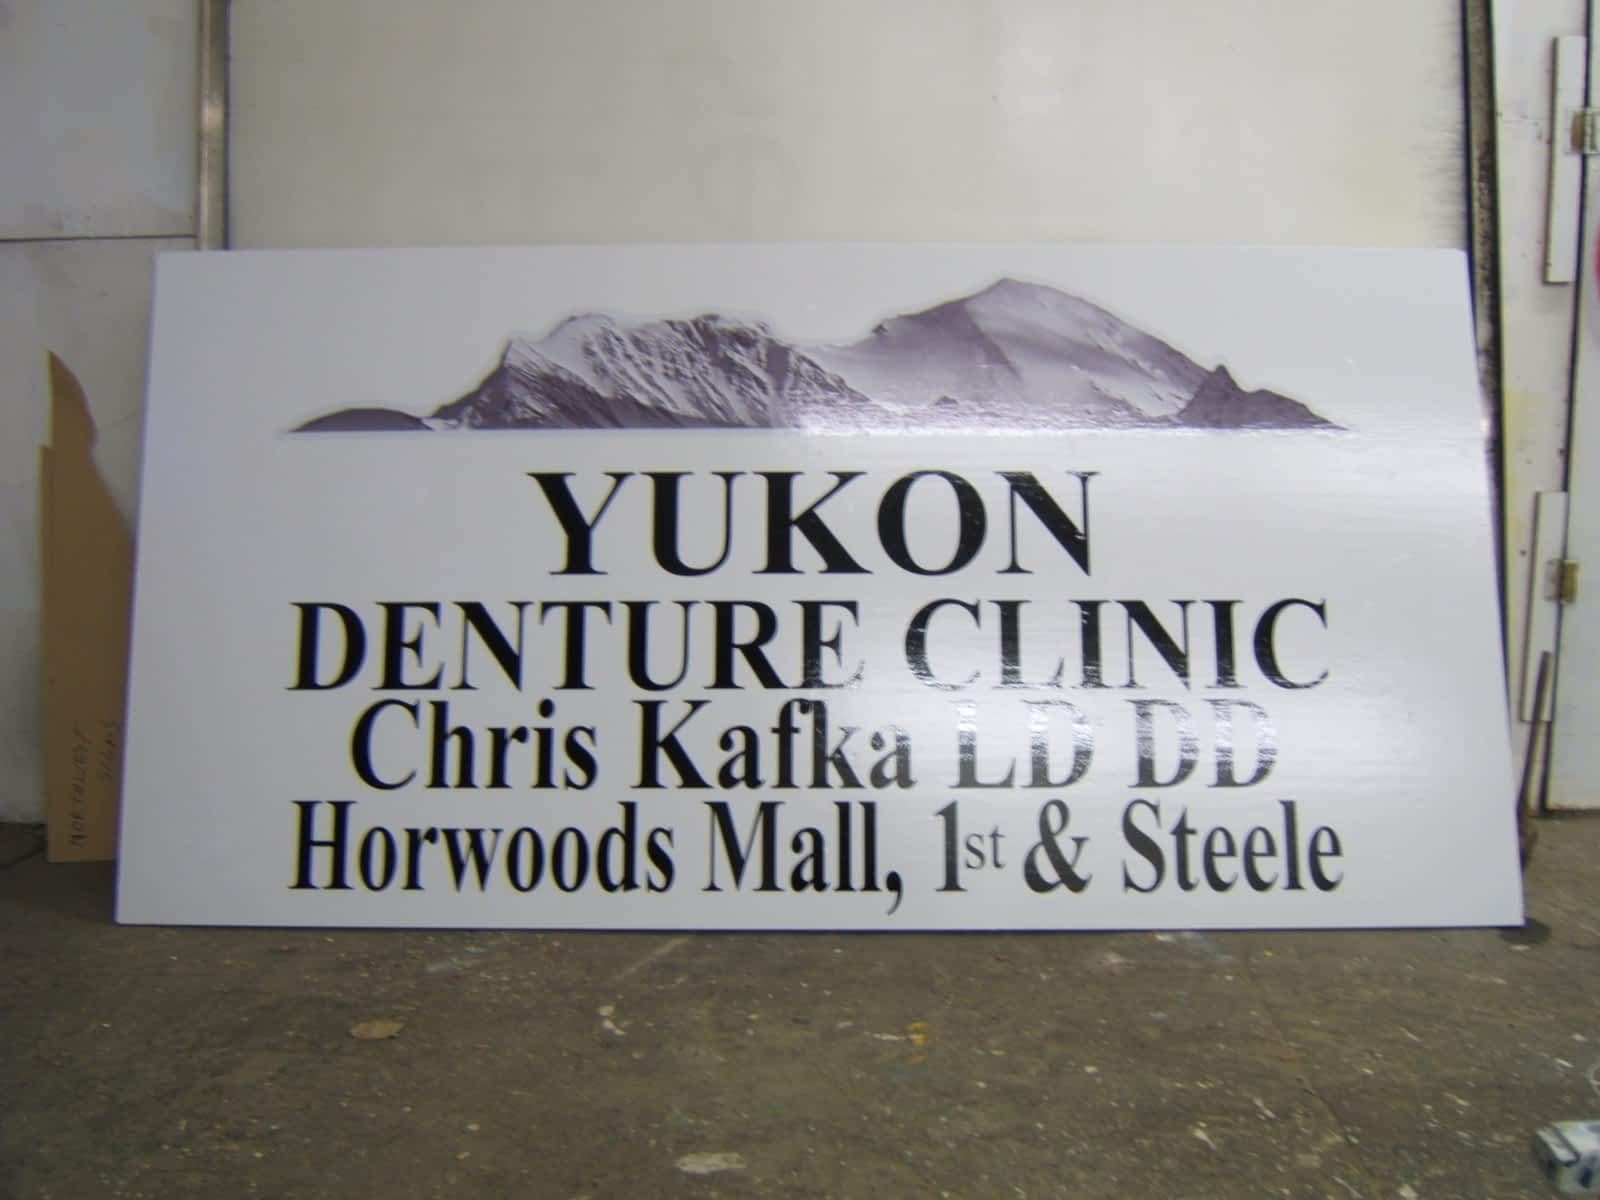 Yukon Denture Clinic